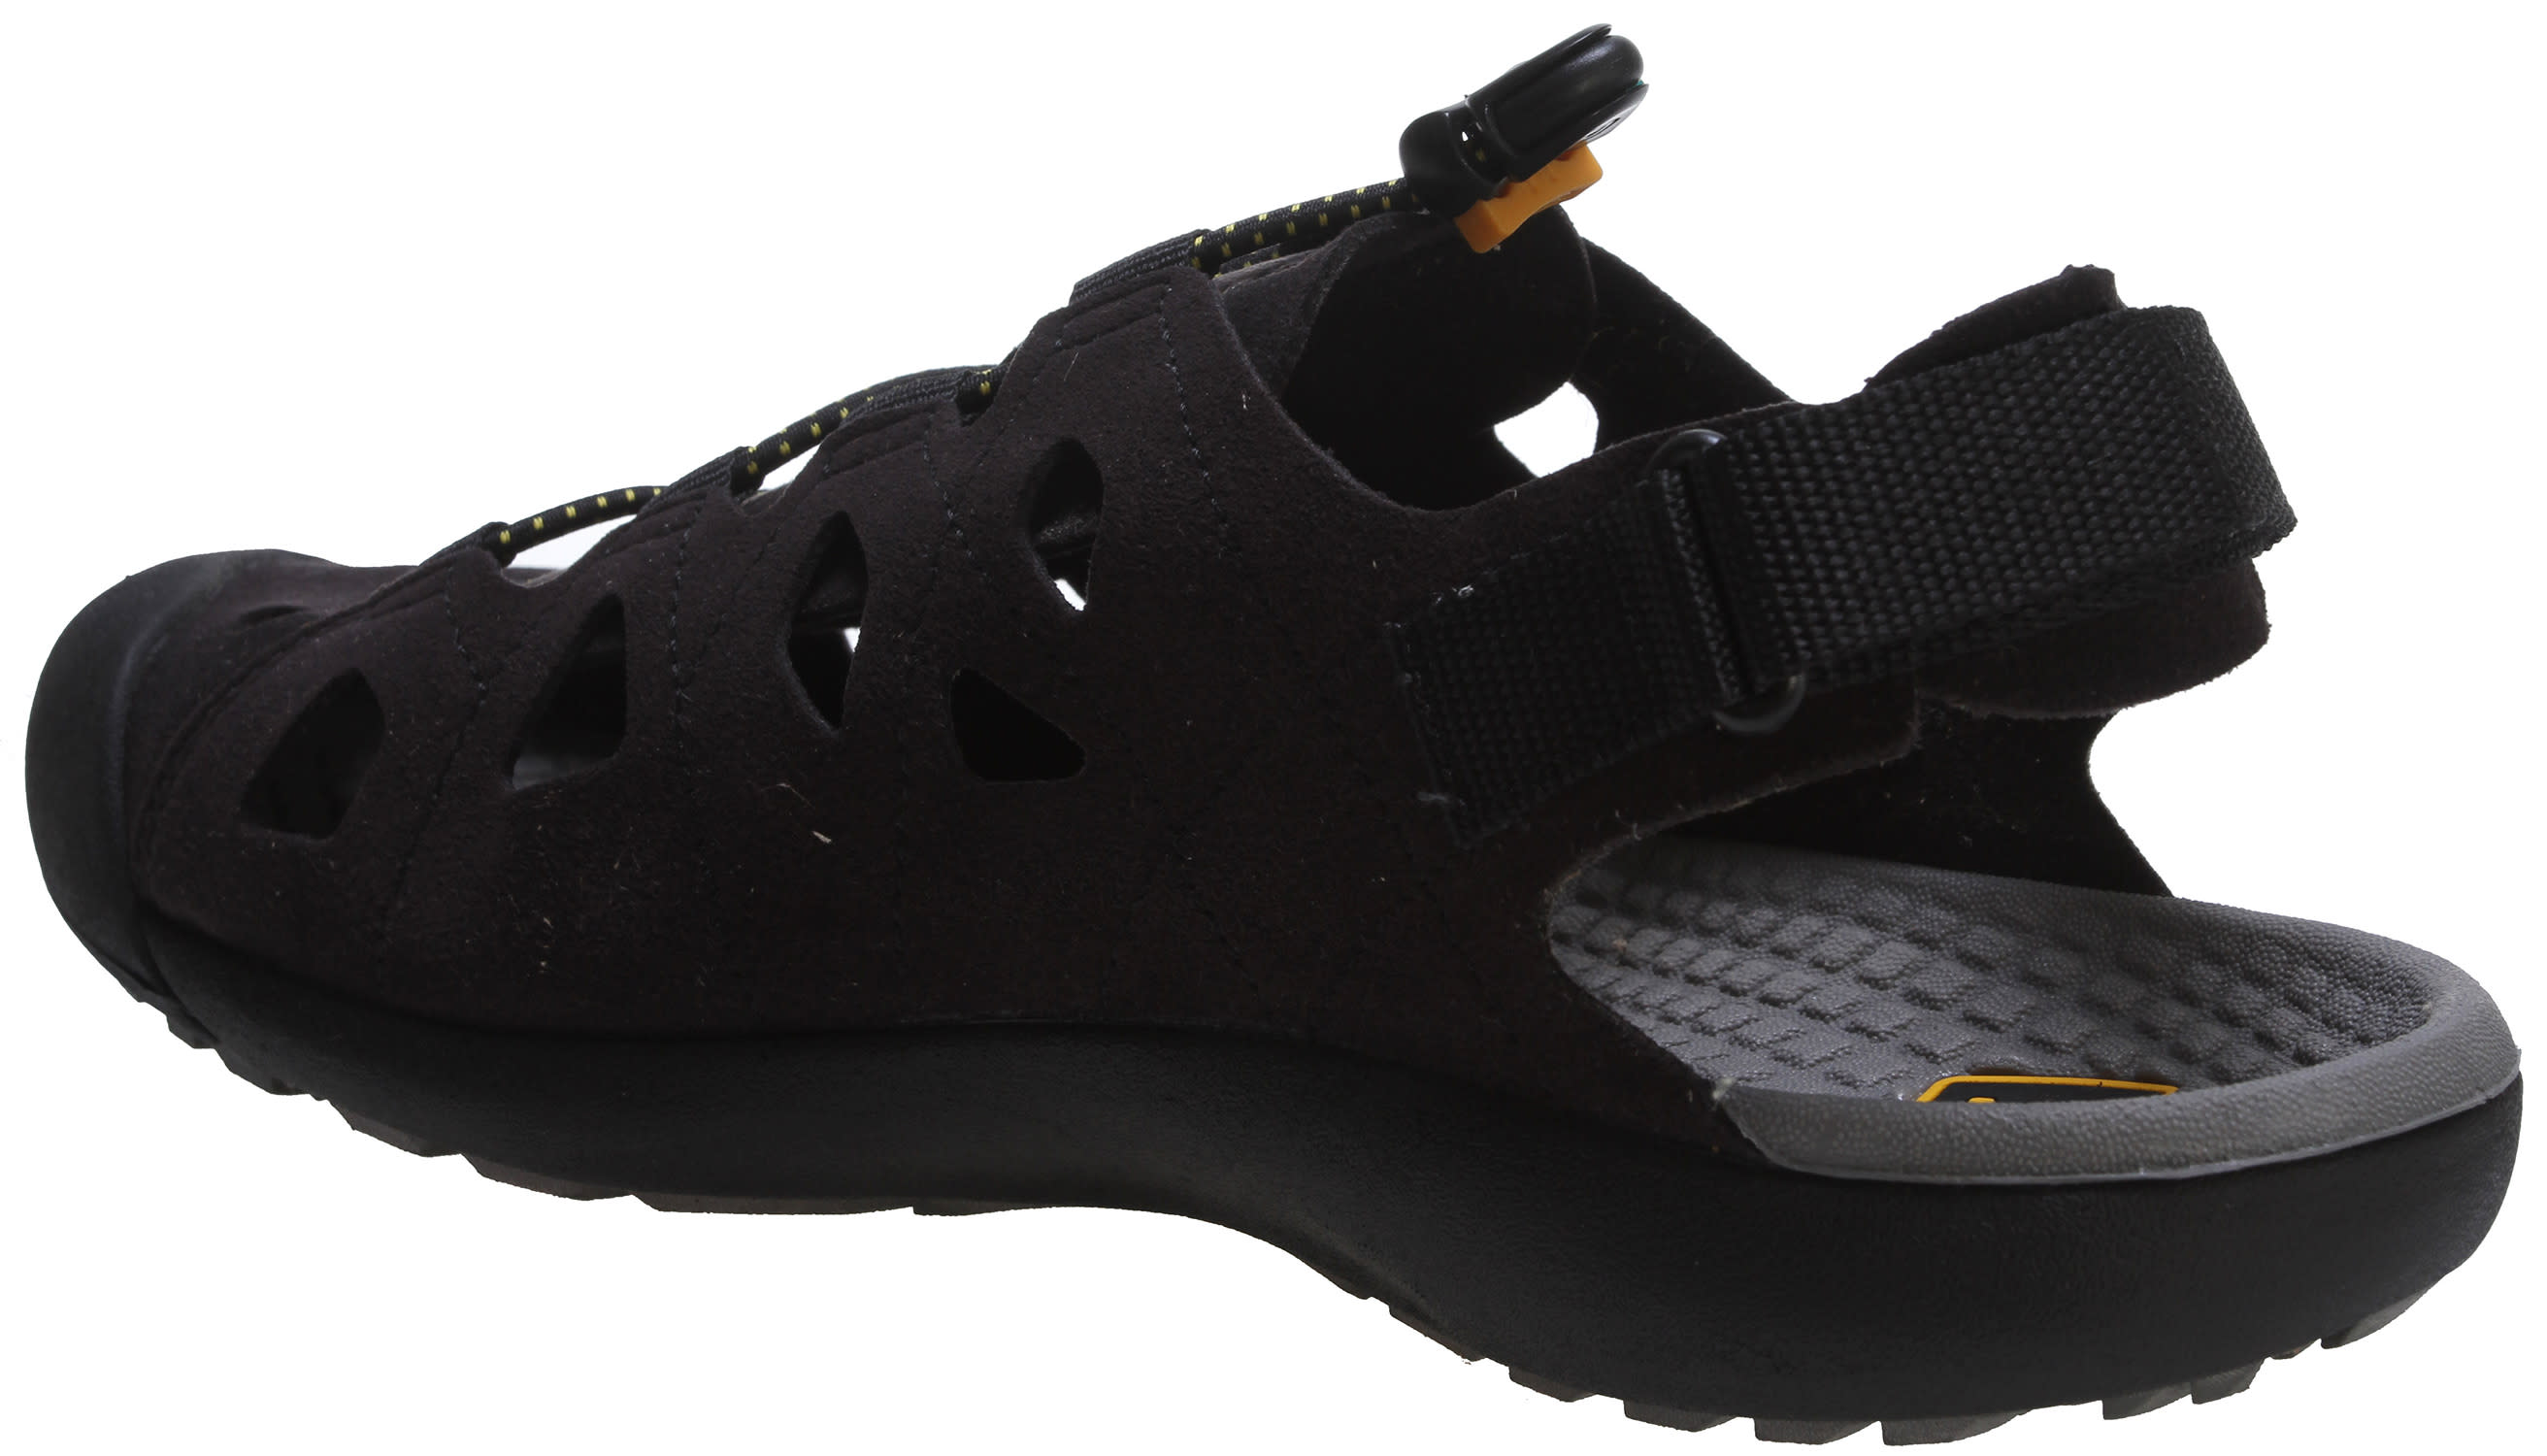 On Sale Keen Class 5 Water Sandals up to 55% off